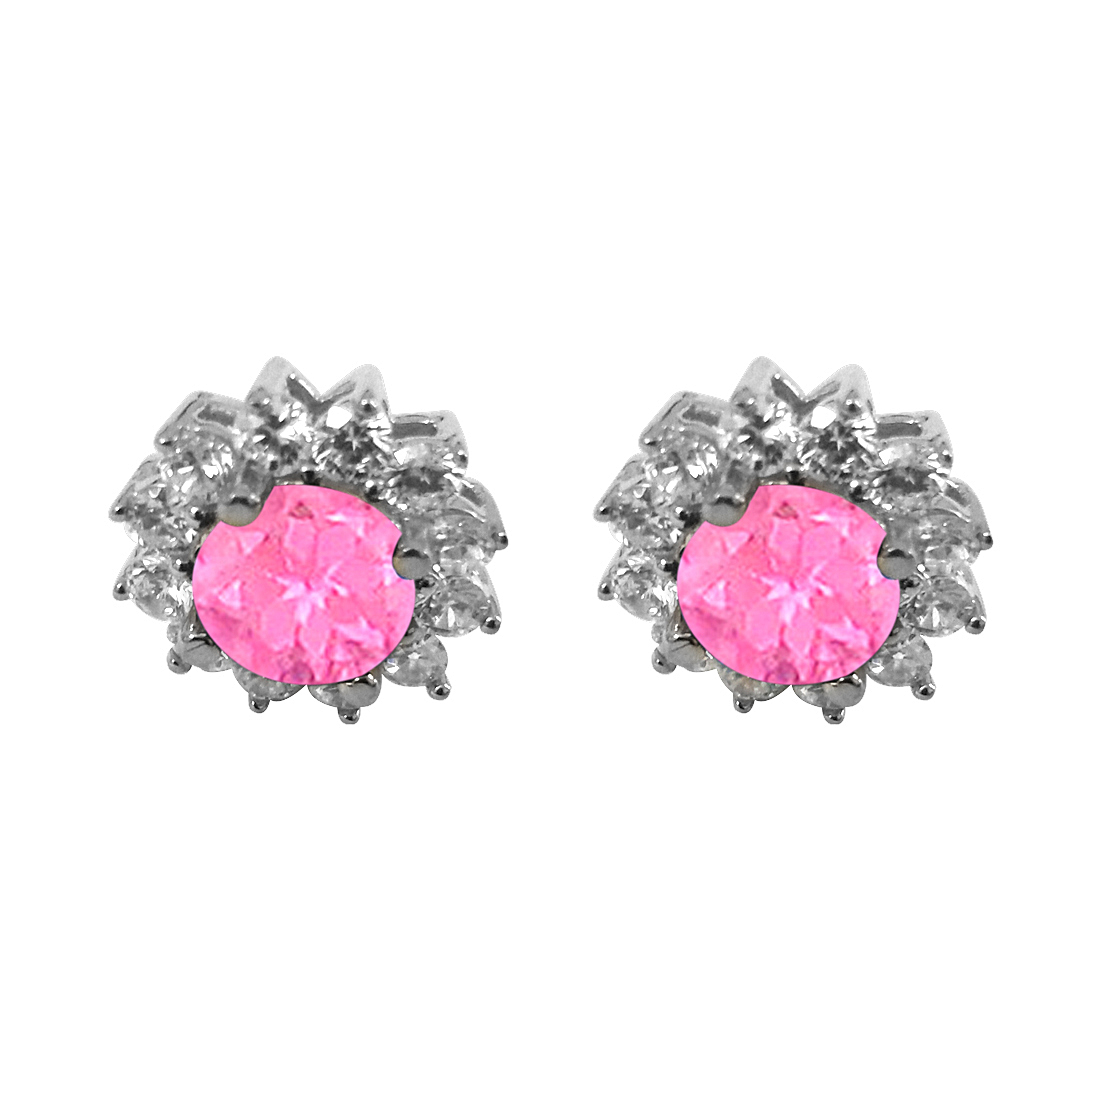 September Birthstone Created Pink Sapphire with CZ Earrings in Sterling Silver - image 2 de 2